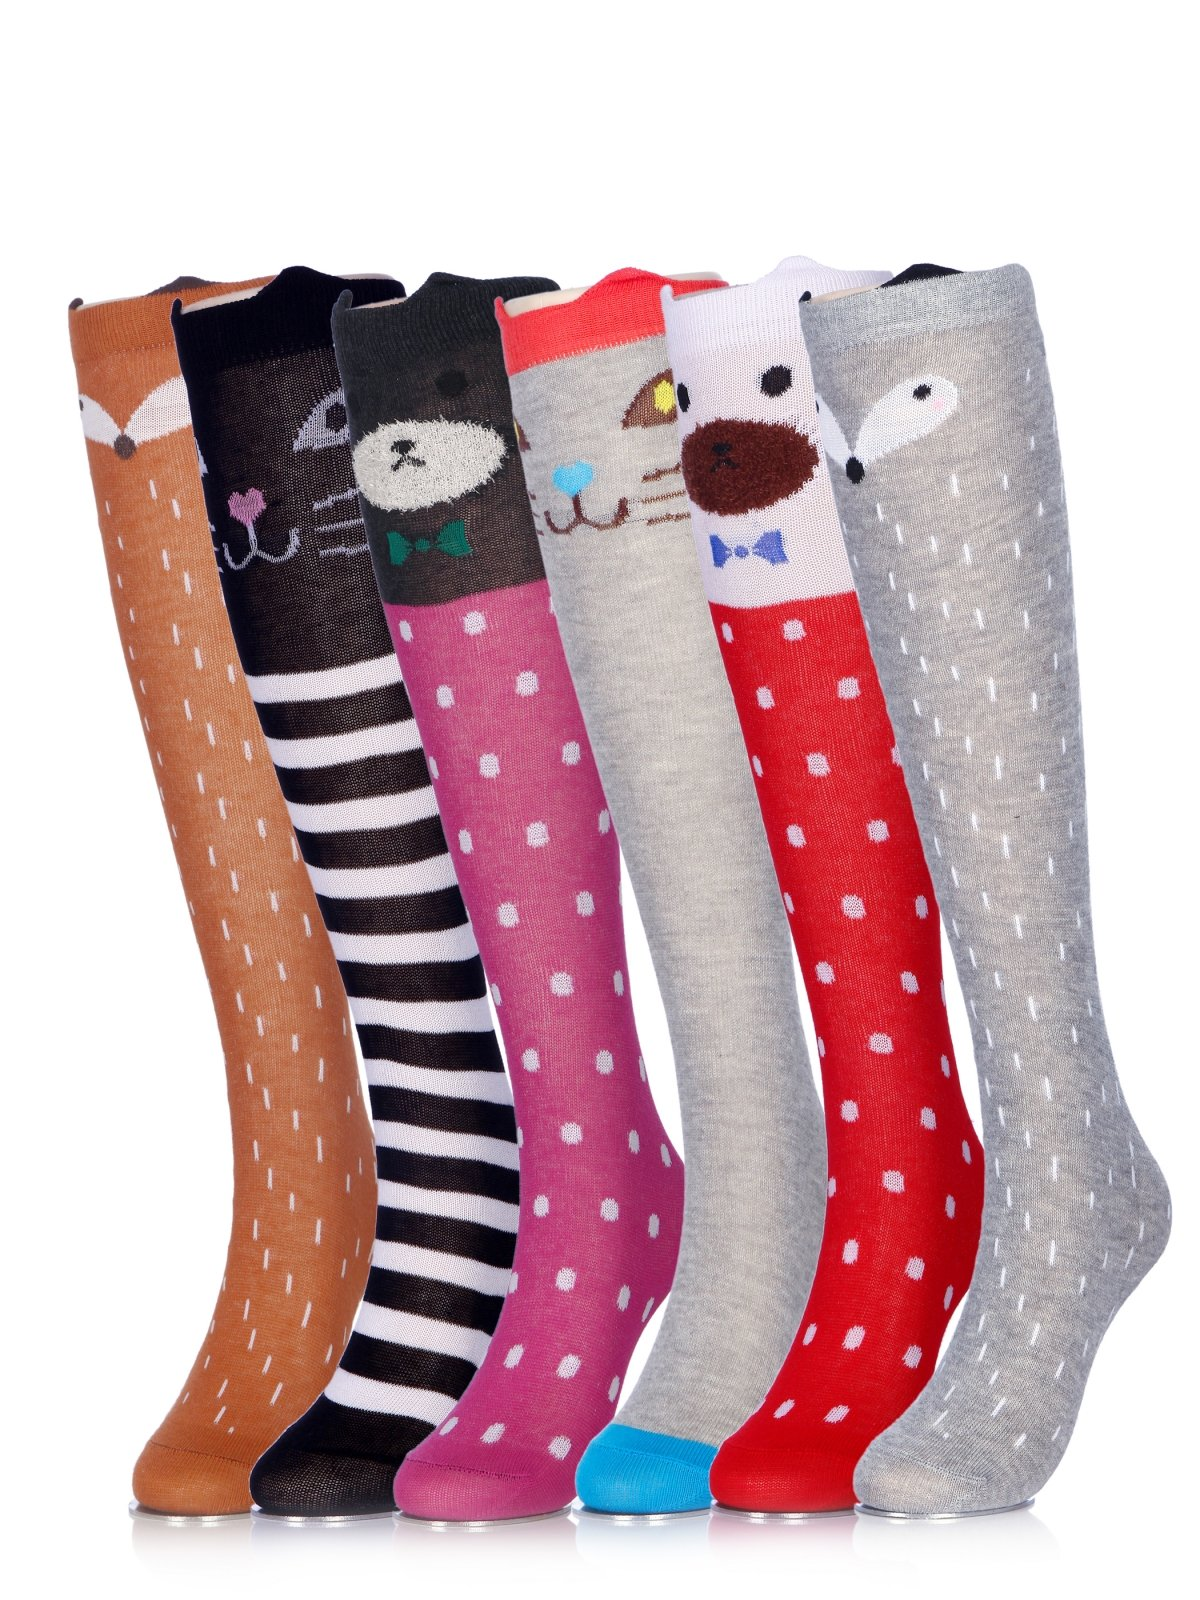 Girls Socks Knee High Stockings Cartoon Animal Warm Cotton Socks 6PCS 6a Colors One Size by CISMARK (Image #1)